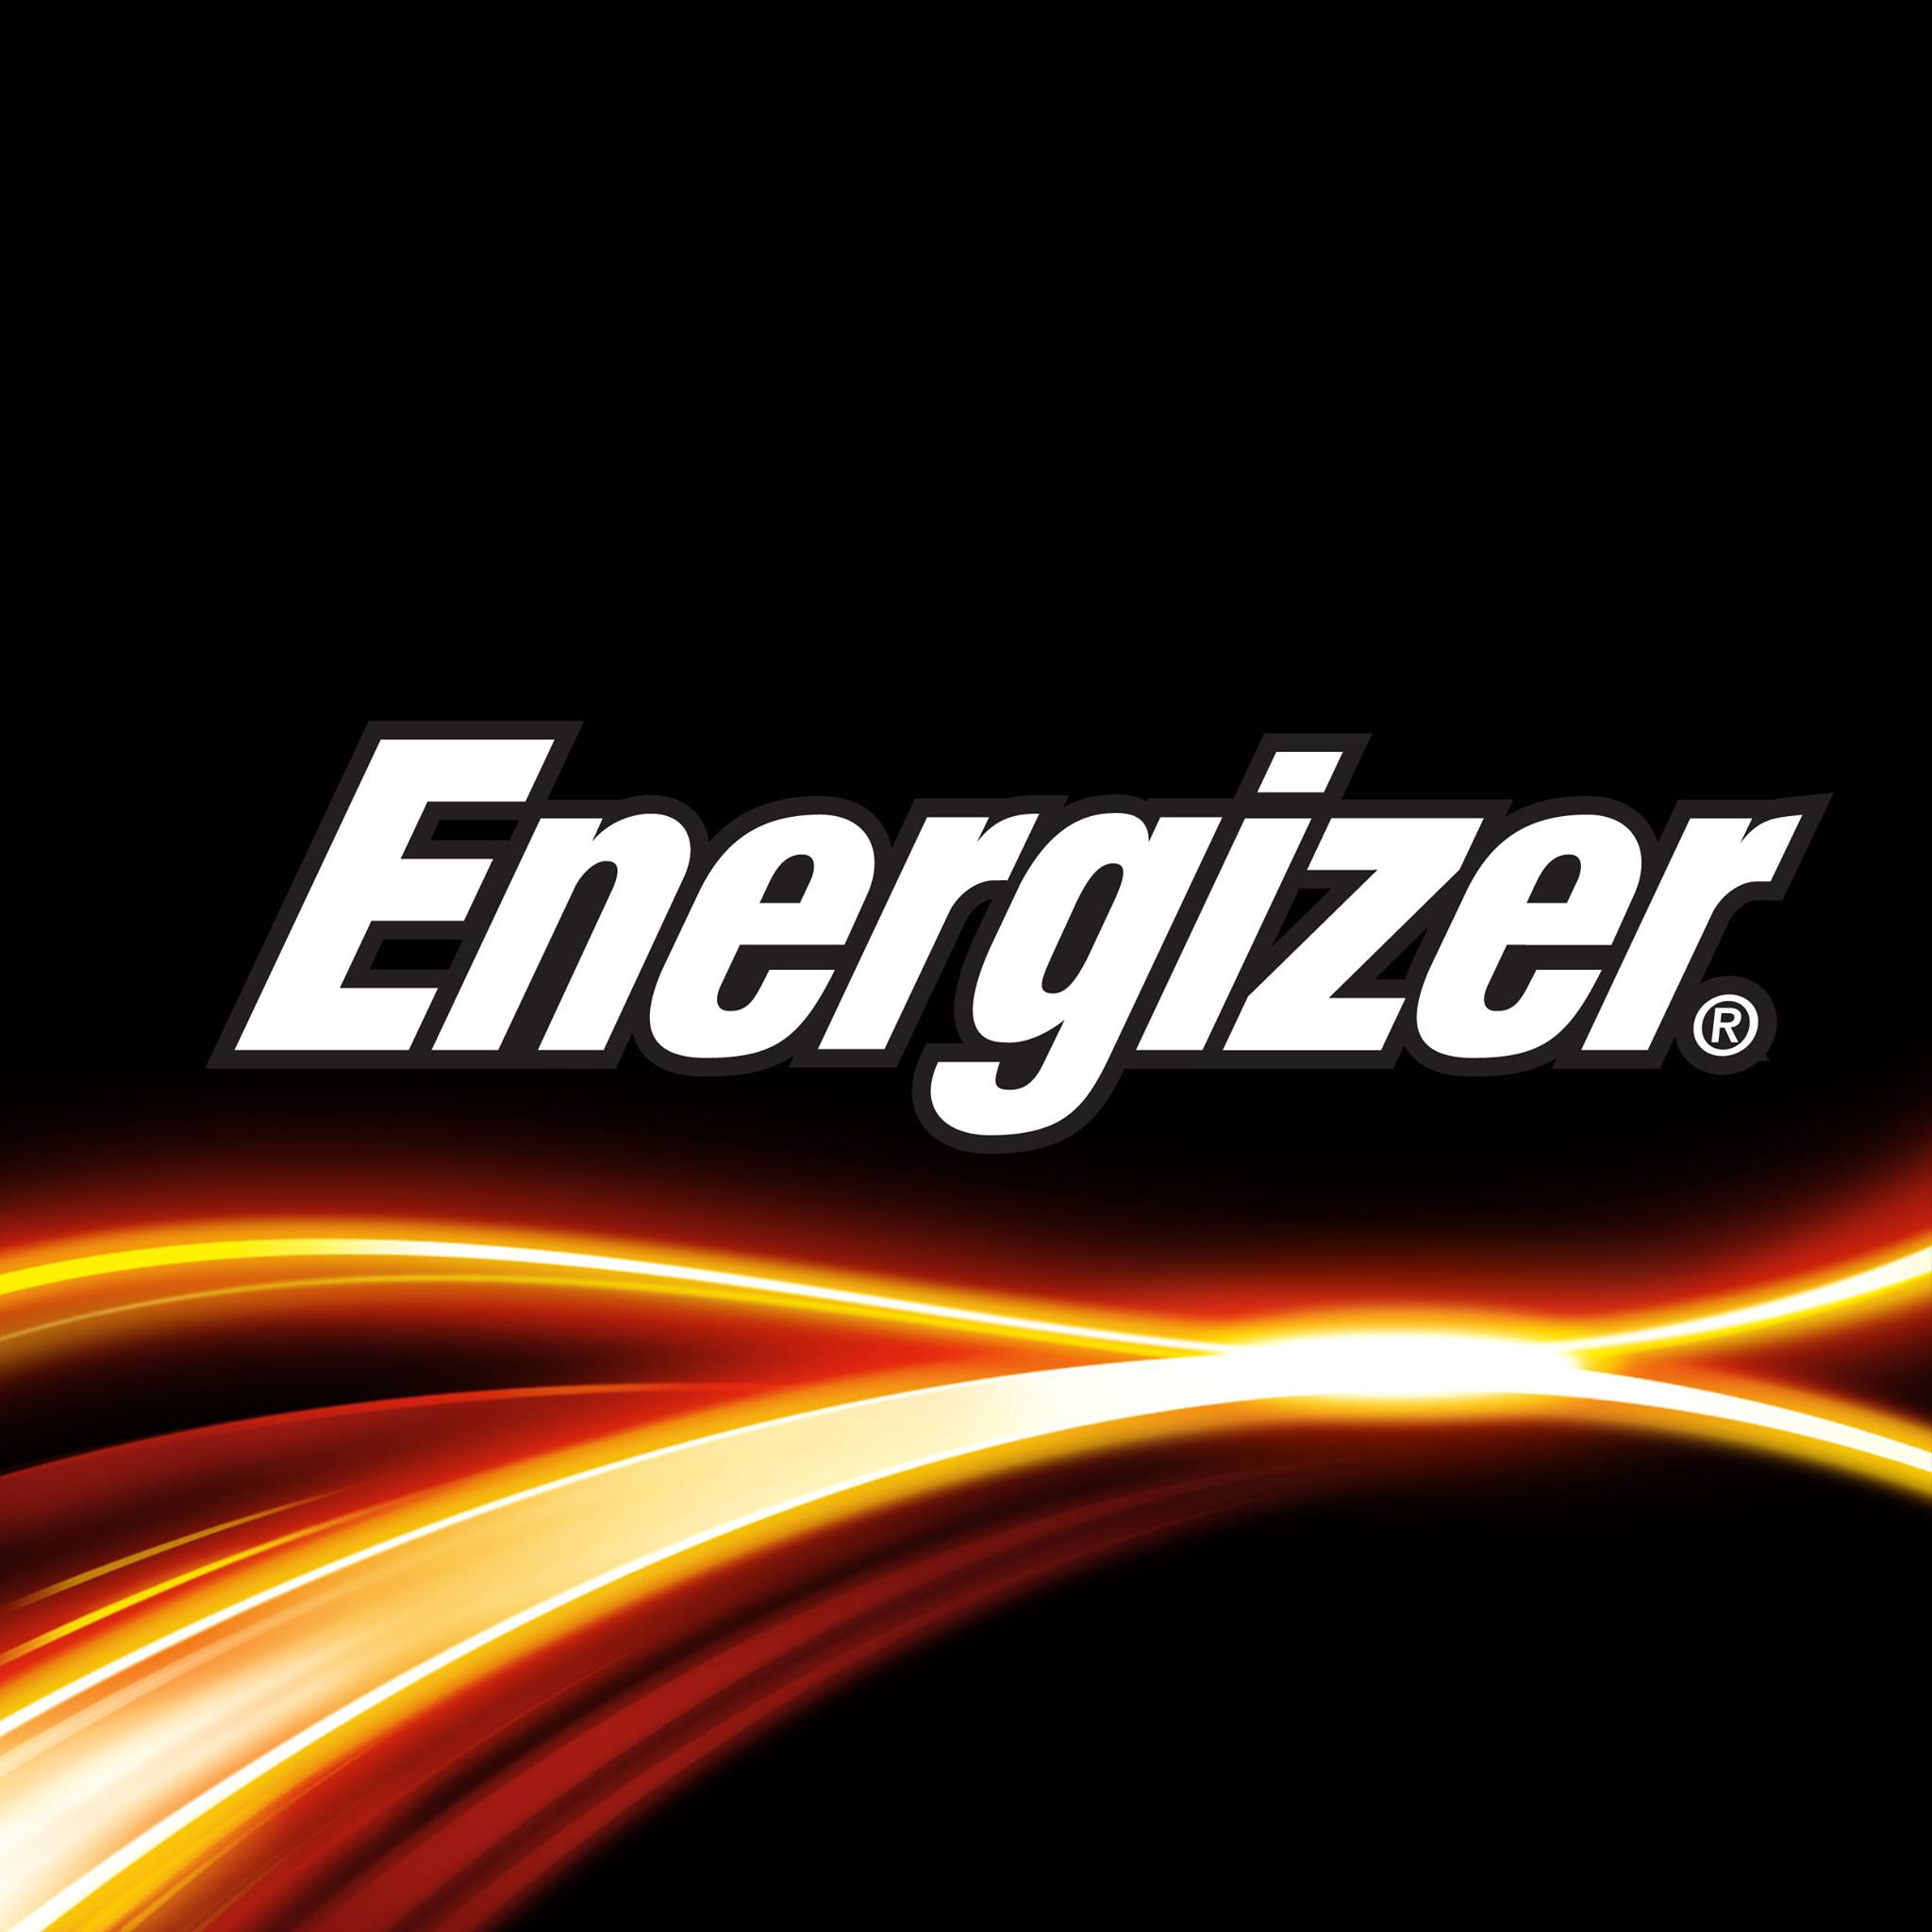 21af4b2041 Energizer Holdings, Inc. announces pricing of $500 million of senior notes